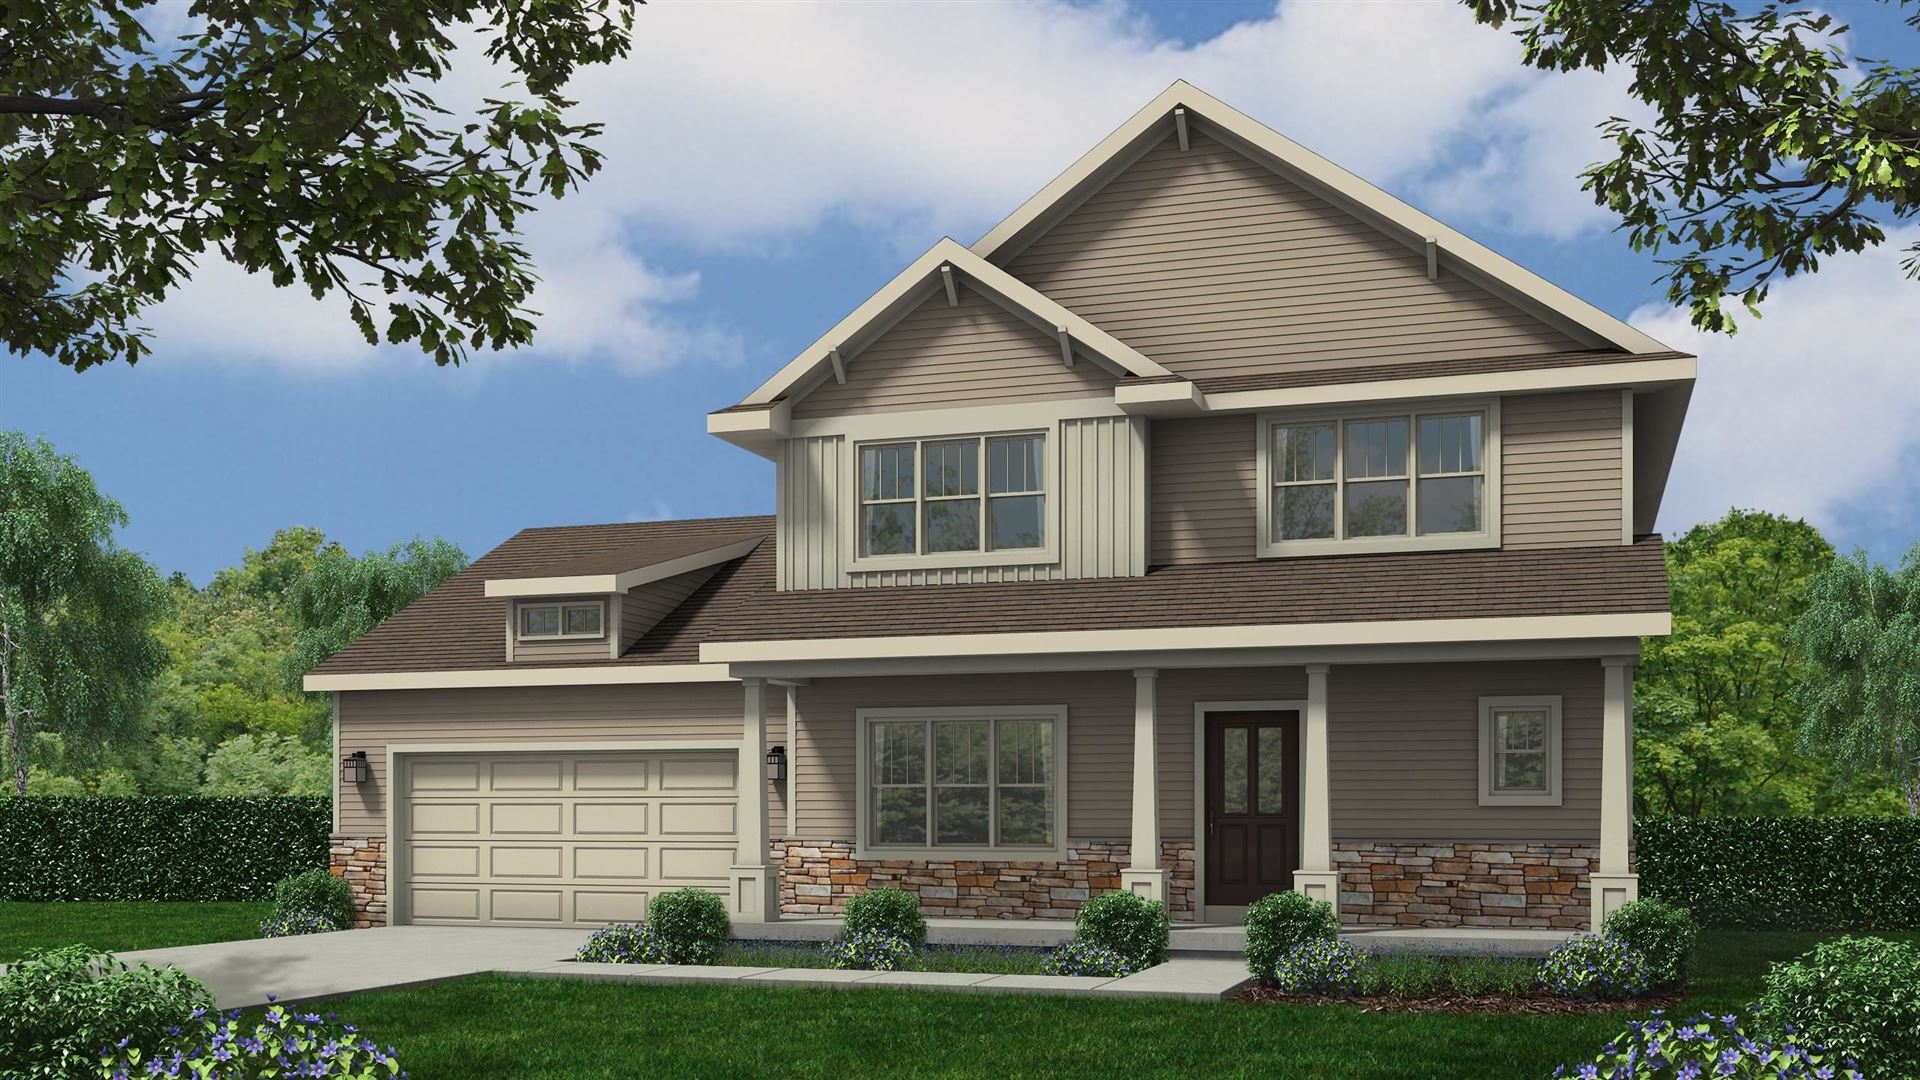 Photo for 1214 Manor Dr, Mount Horeb, WI 53572 (MLS # 1921454)